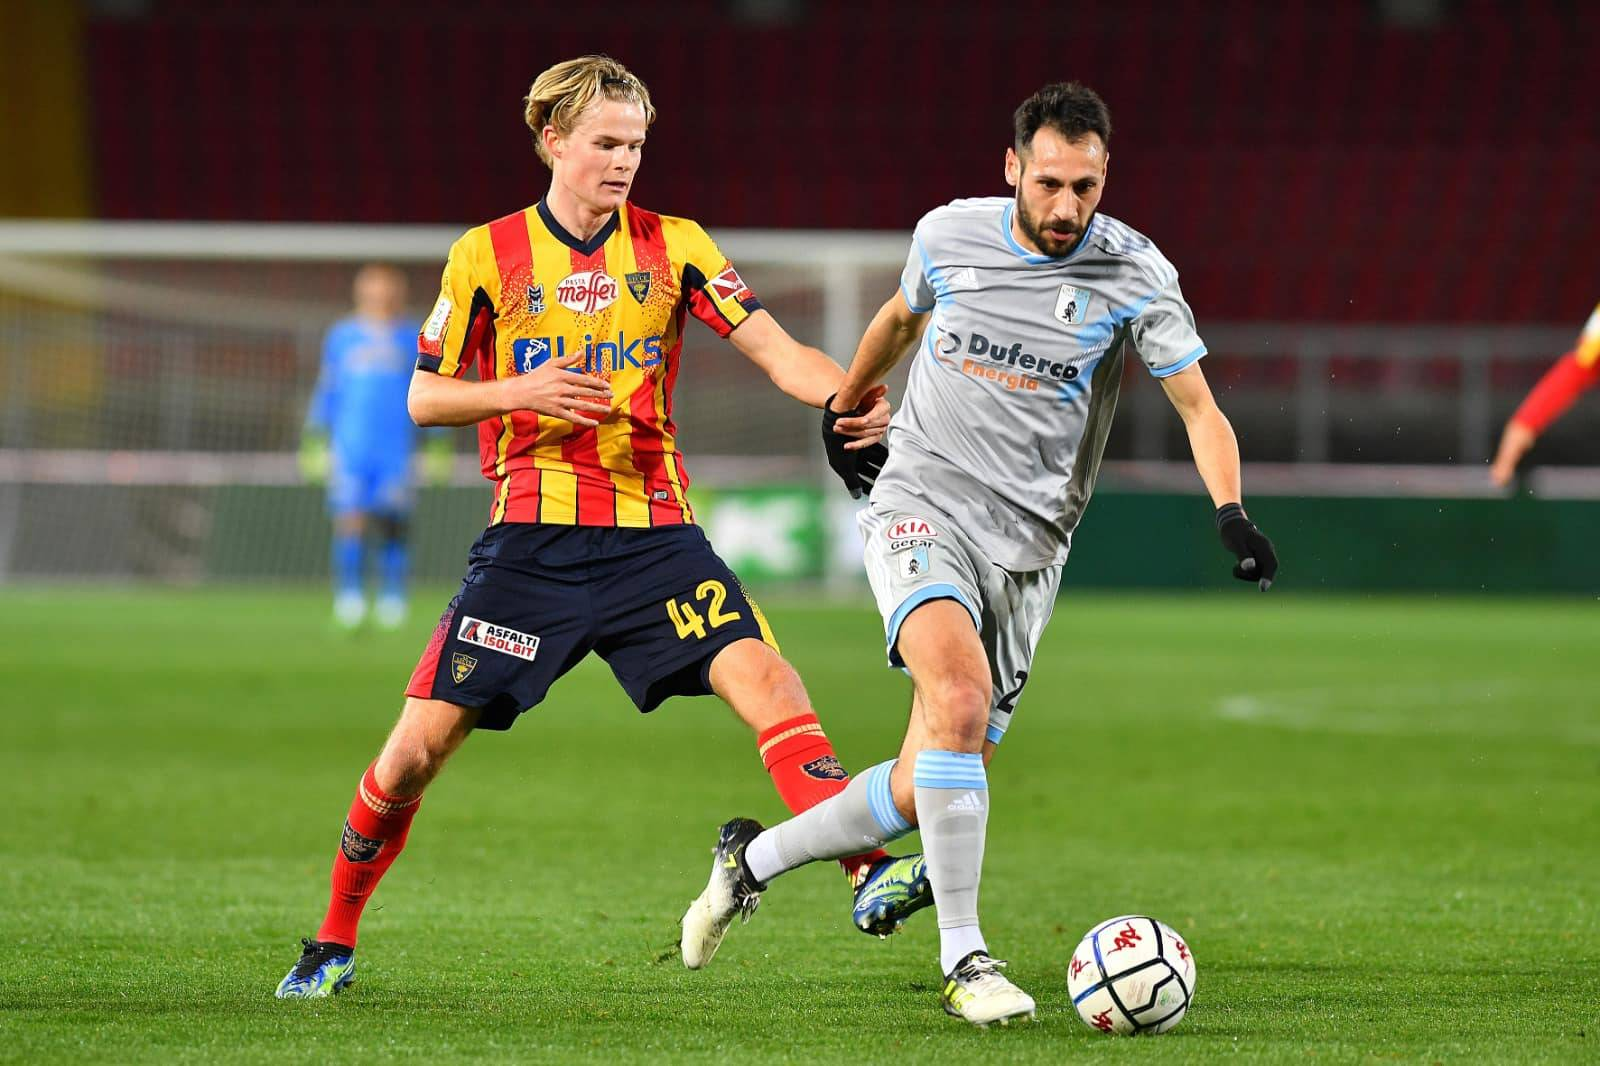 Lecce vs Virtus Entella